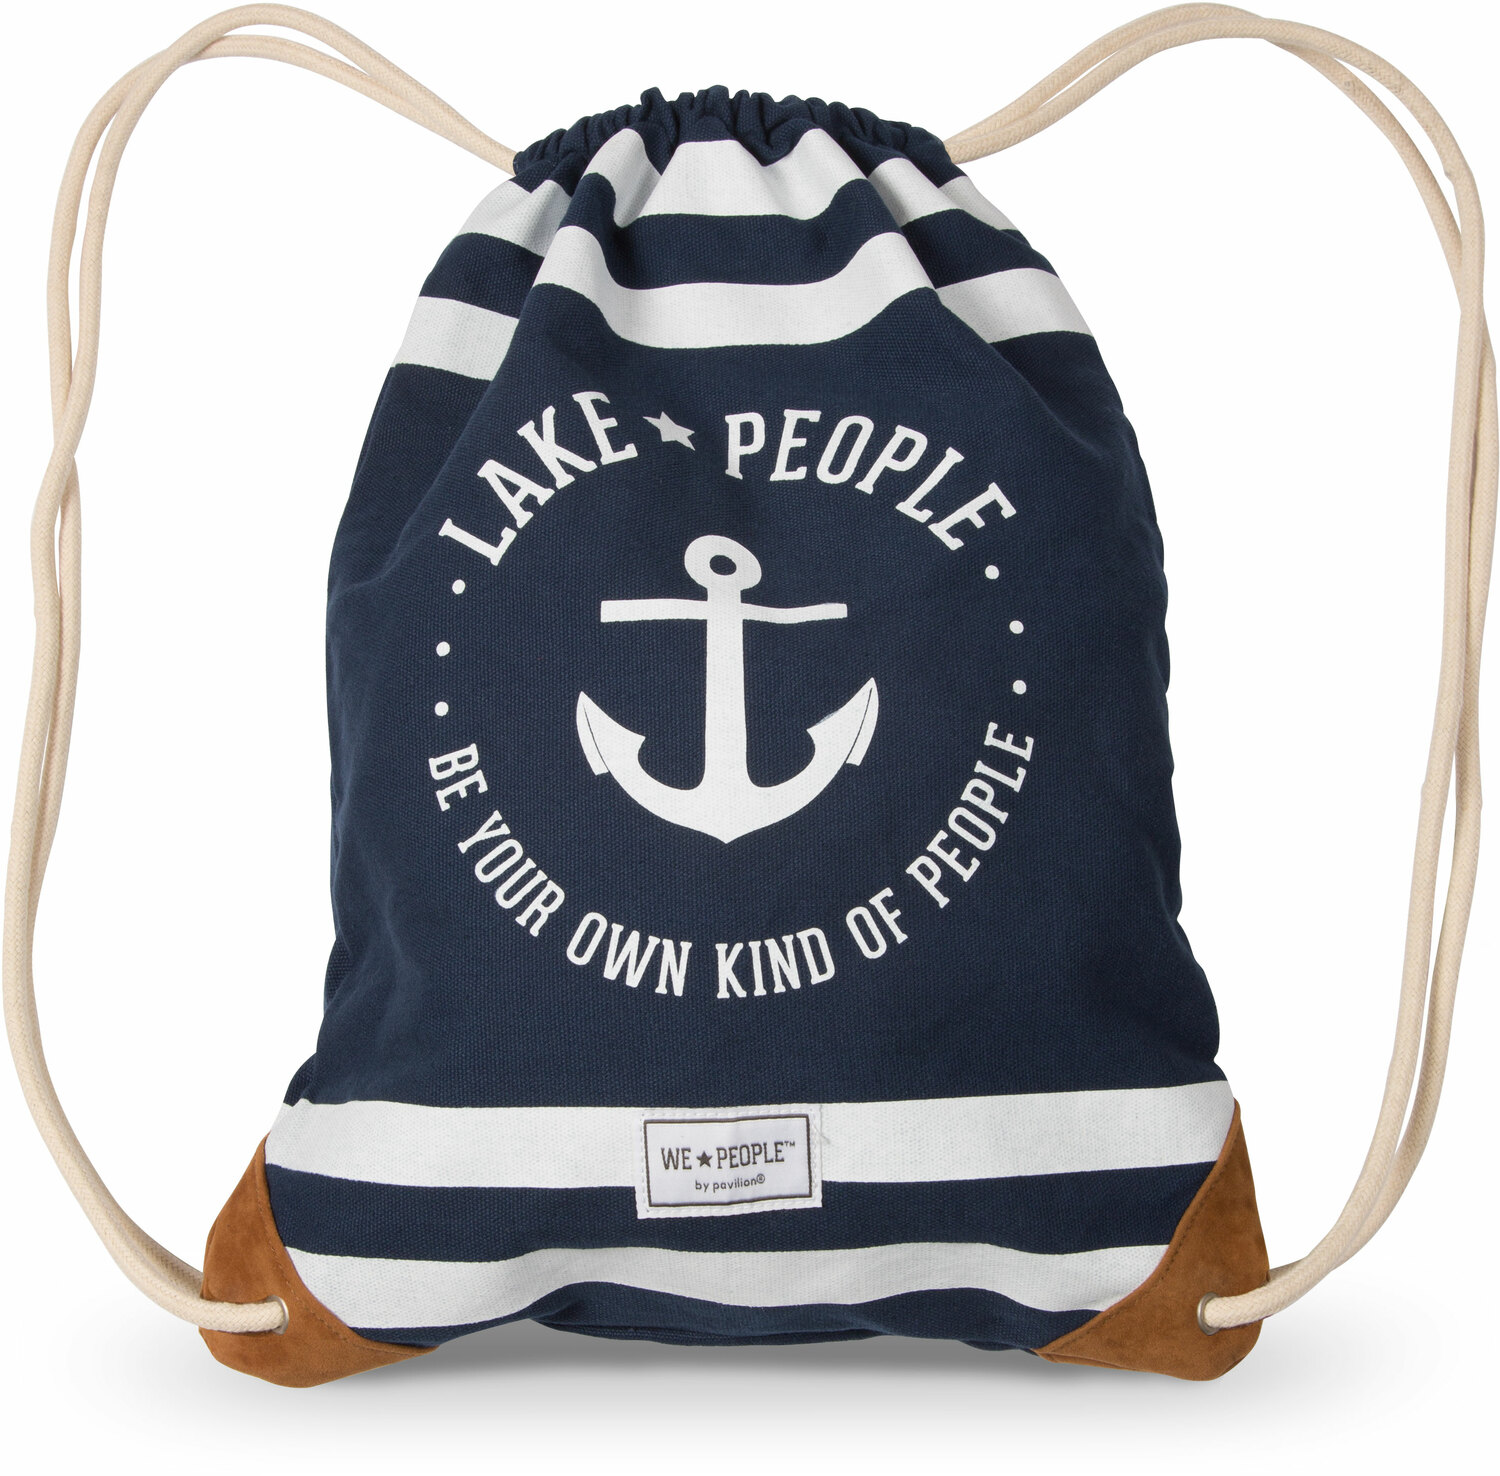 "Lake People by We People - Lake People - 13"" x 17"" Canvas Drawstring Bag"